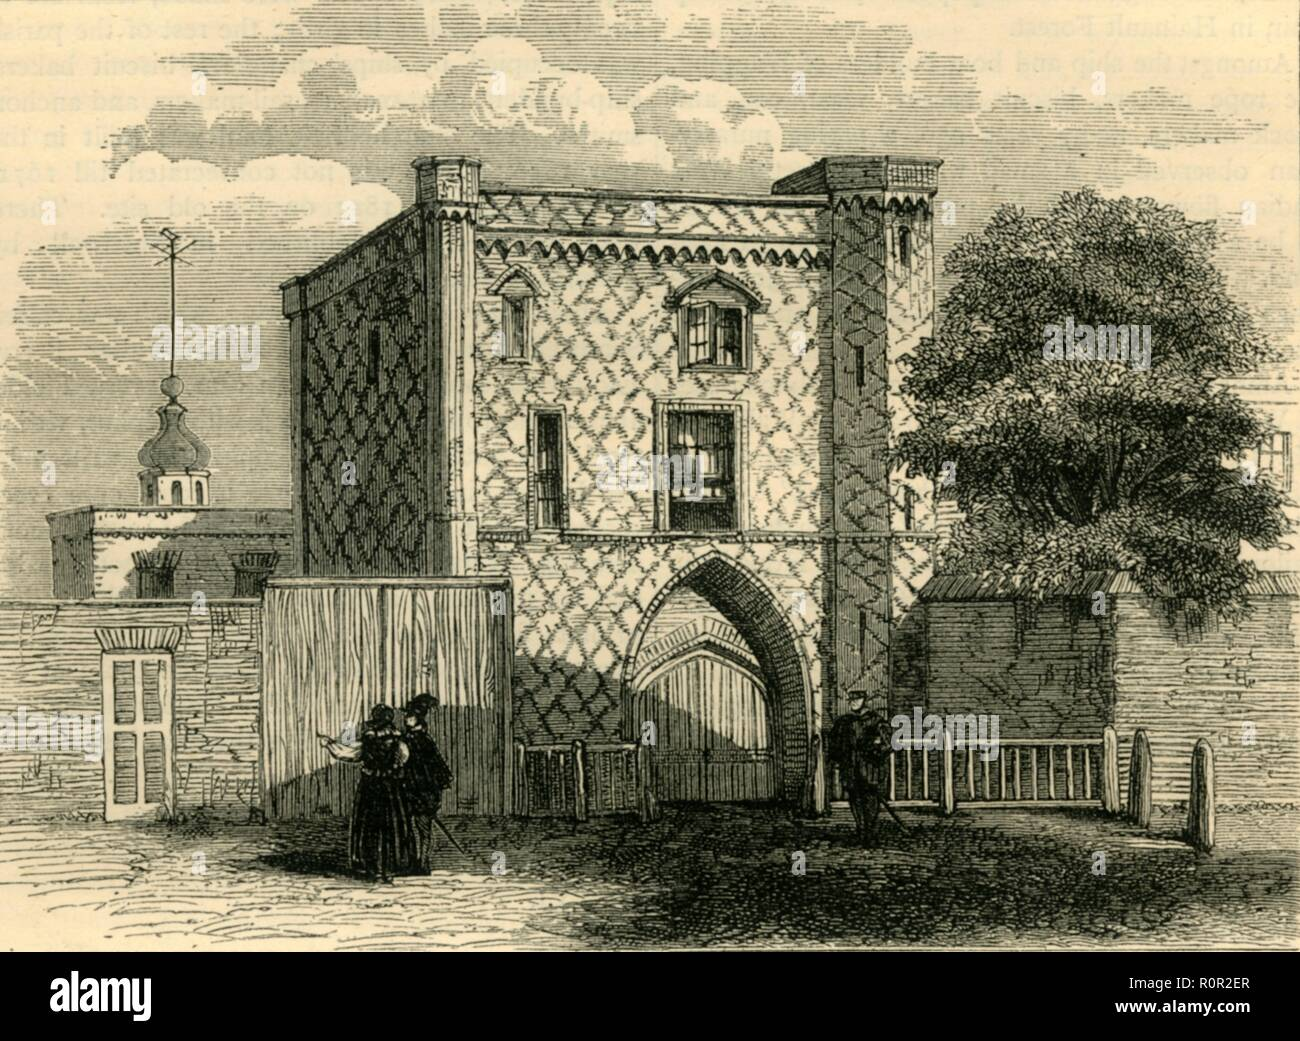 'Old Gateway at Stepney', (c1872). 'This House by Tradition is call'd King Johns Gate from what Authority is not known, but will serve as a specimen of Variegated Brick work. It is reputed to be the oldest House in Stepney. In this Village Edward the I held a Parliament Anno 1292 and in Doomsday Book it occurs as a Place of great Antiquity.' Brick building in Stepney, London, also known as St John's Gate. From Old and New London, Vol. II: A Narrative of Its History, Its People, and Its Places, by Walter Thornbury. [Cassell, Petter, Galpin & Co., London, Paris & New York] - Stock Image